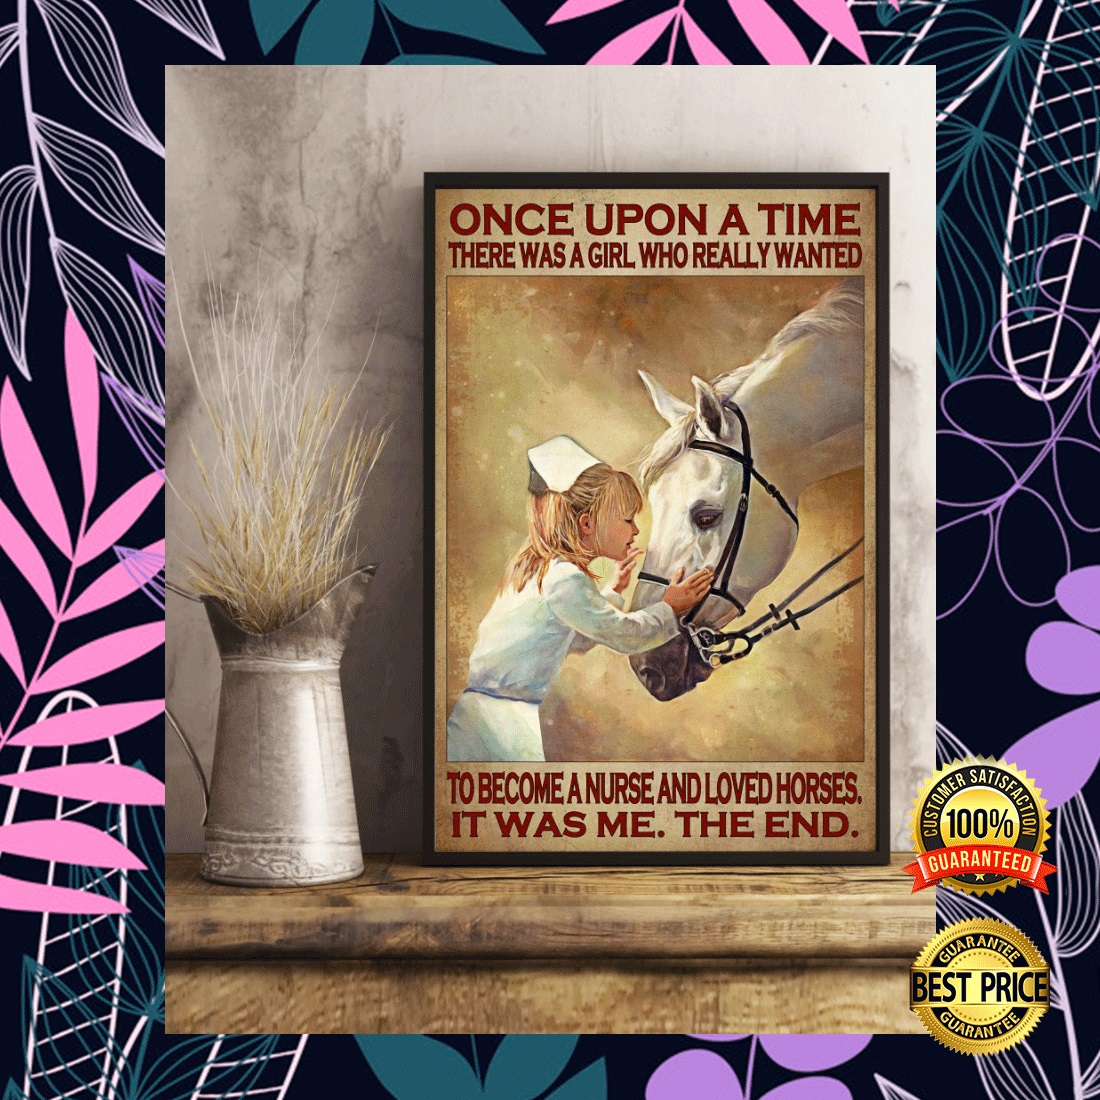 ONCE UPON A TIME THERE WAS A GIRL WHO REALLY WANTED TO BECOME A NURSE AND LOVED HORSES POSTER 5